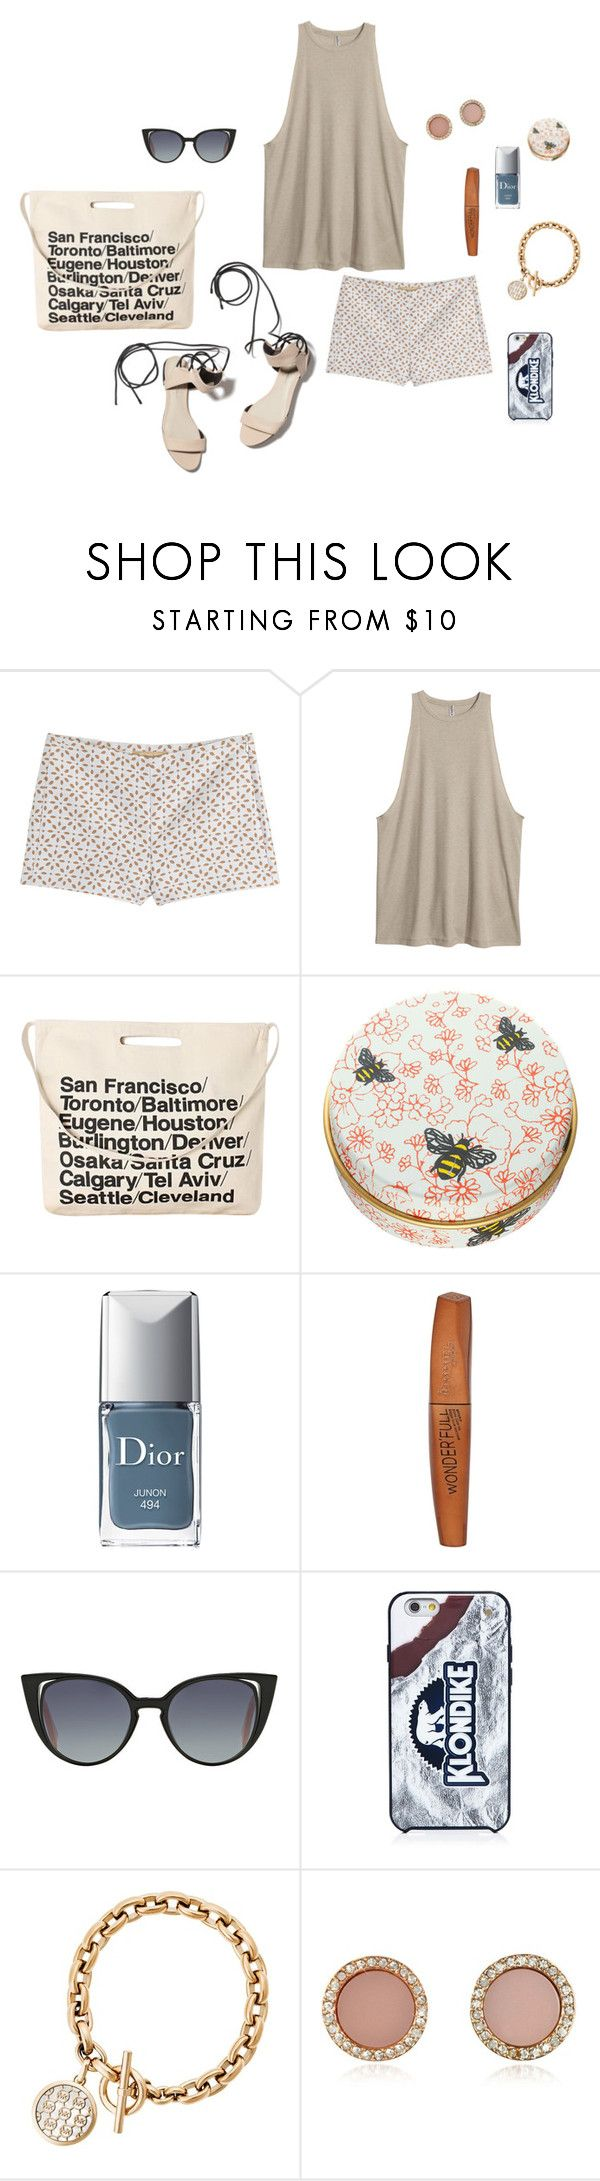 """Toronto"" by picassogirl ❤ liked on Polyvore featuring Michael Kors, 3.1 Phillip Lim, H&M, Chicnova Fashion, Paul & Joe, Christian Dior, Rimmel, Fendi and Kate Spade"